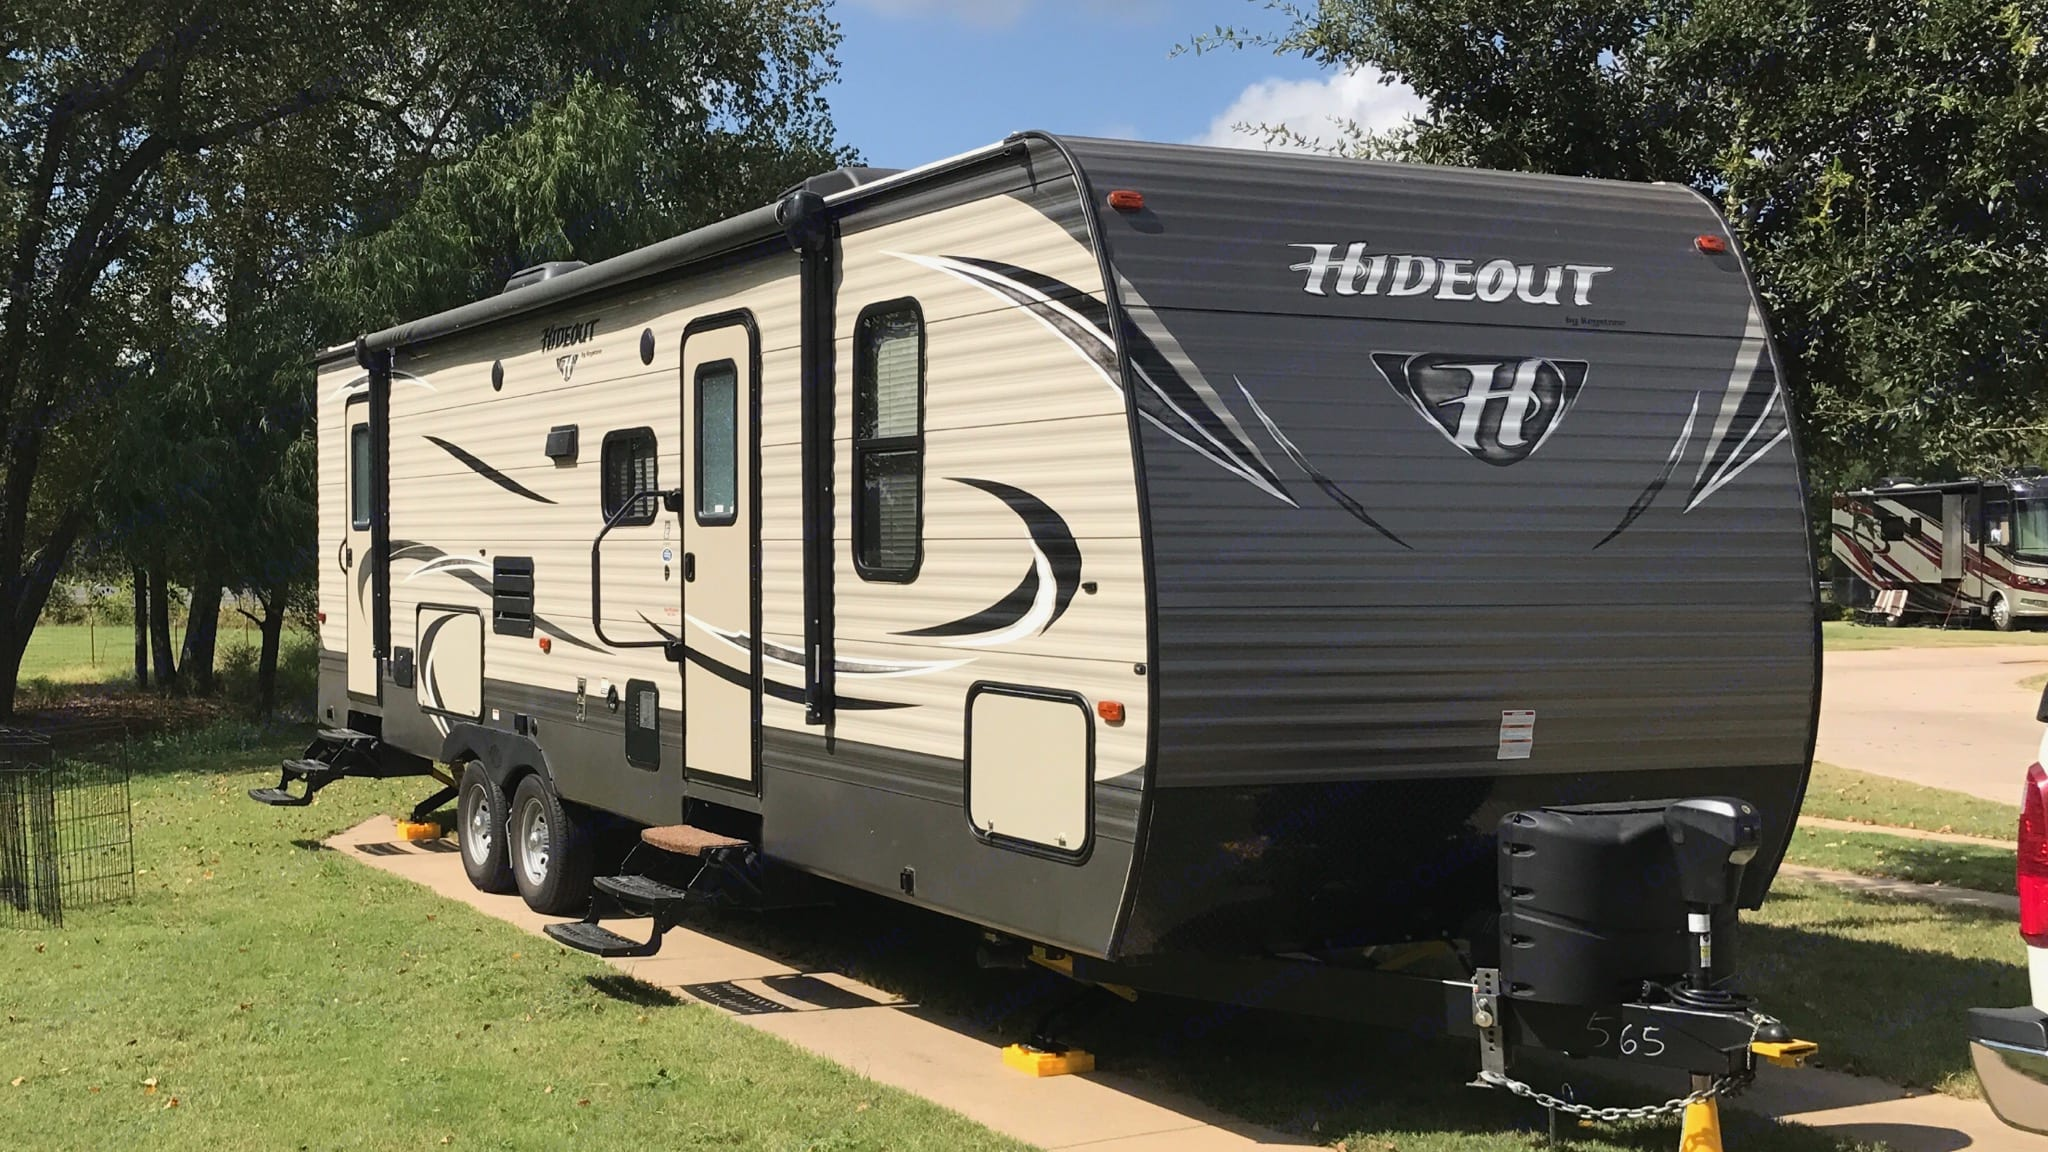 This trailer has plenty of indoor and outdoor space for those fun outdoor weekends or your great urban getaway.. Keystone Hideout 2017